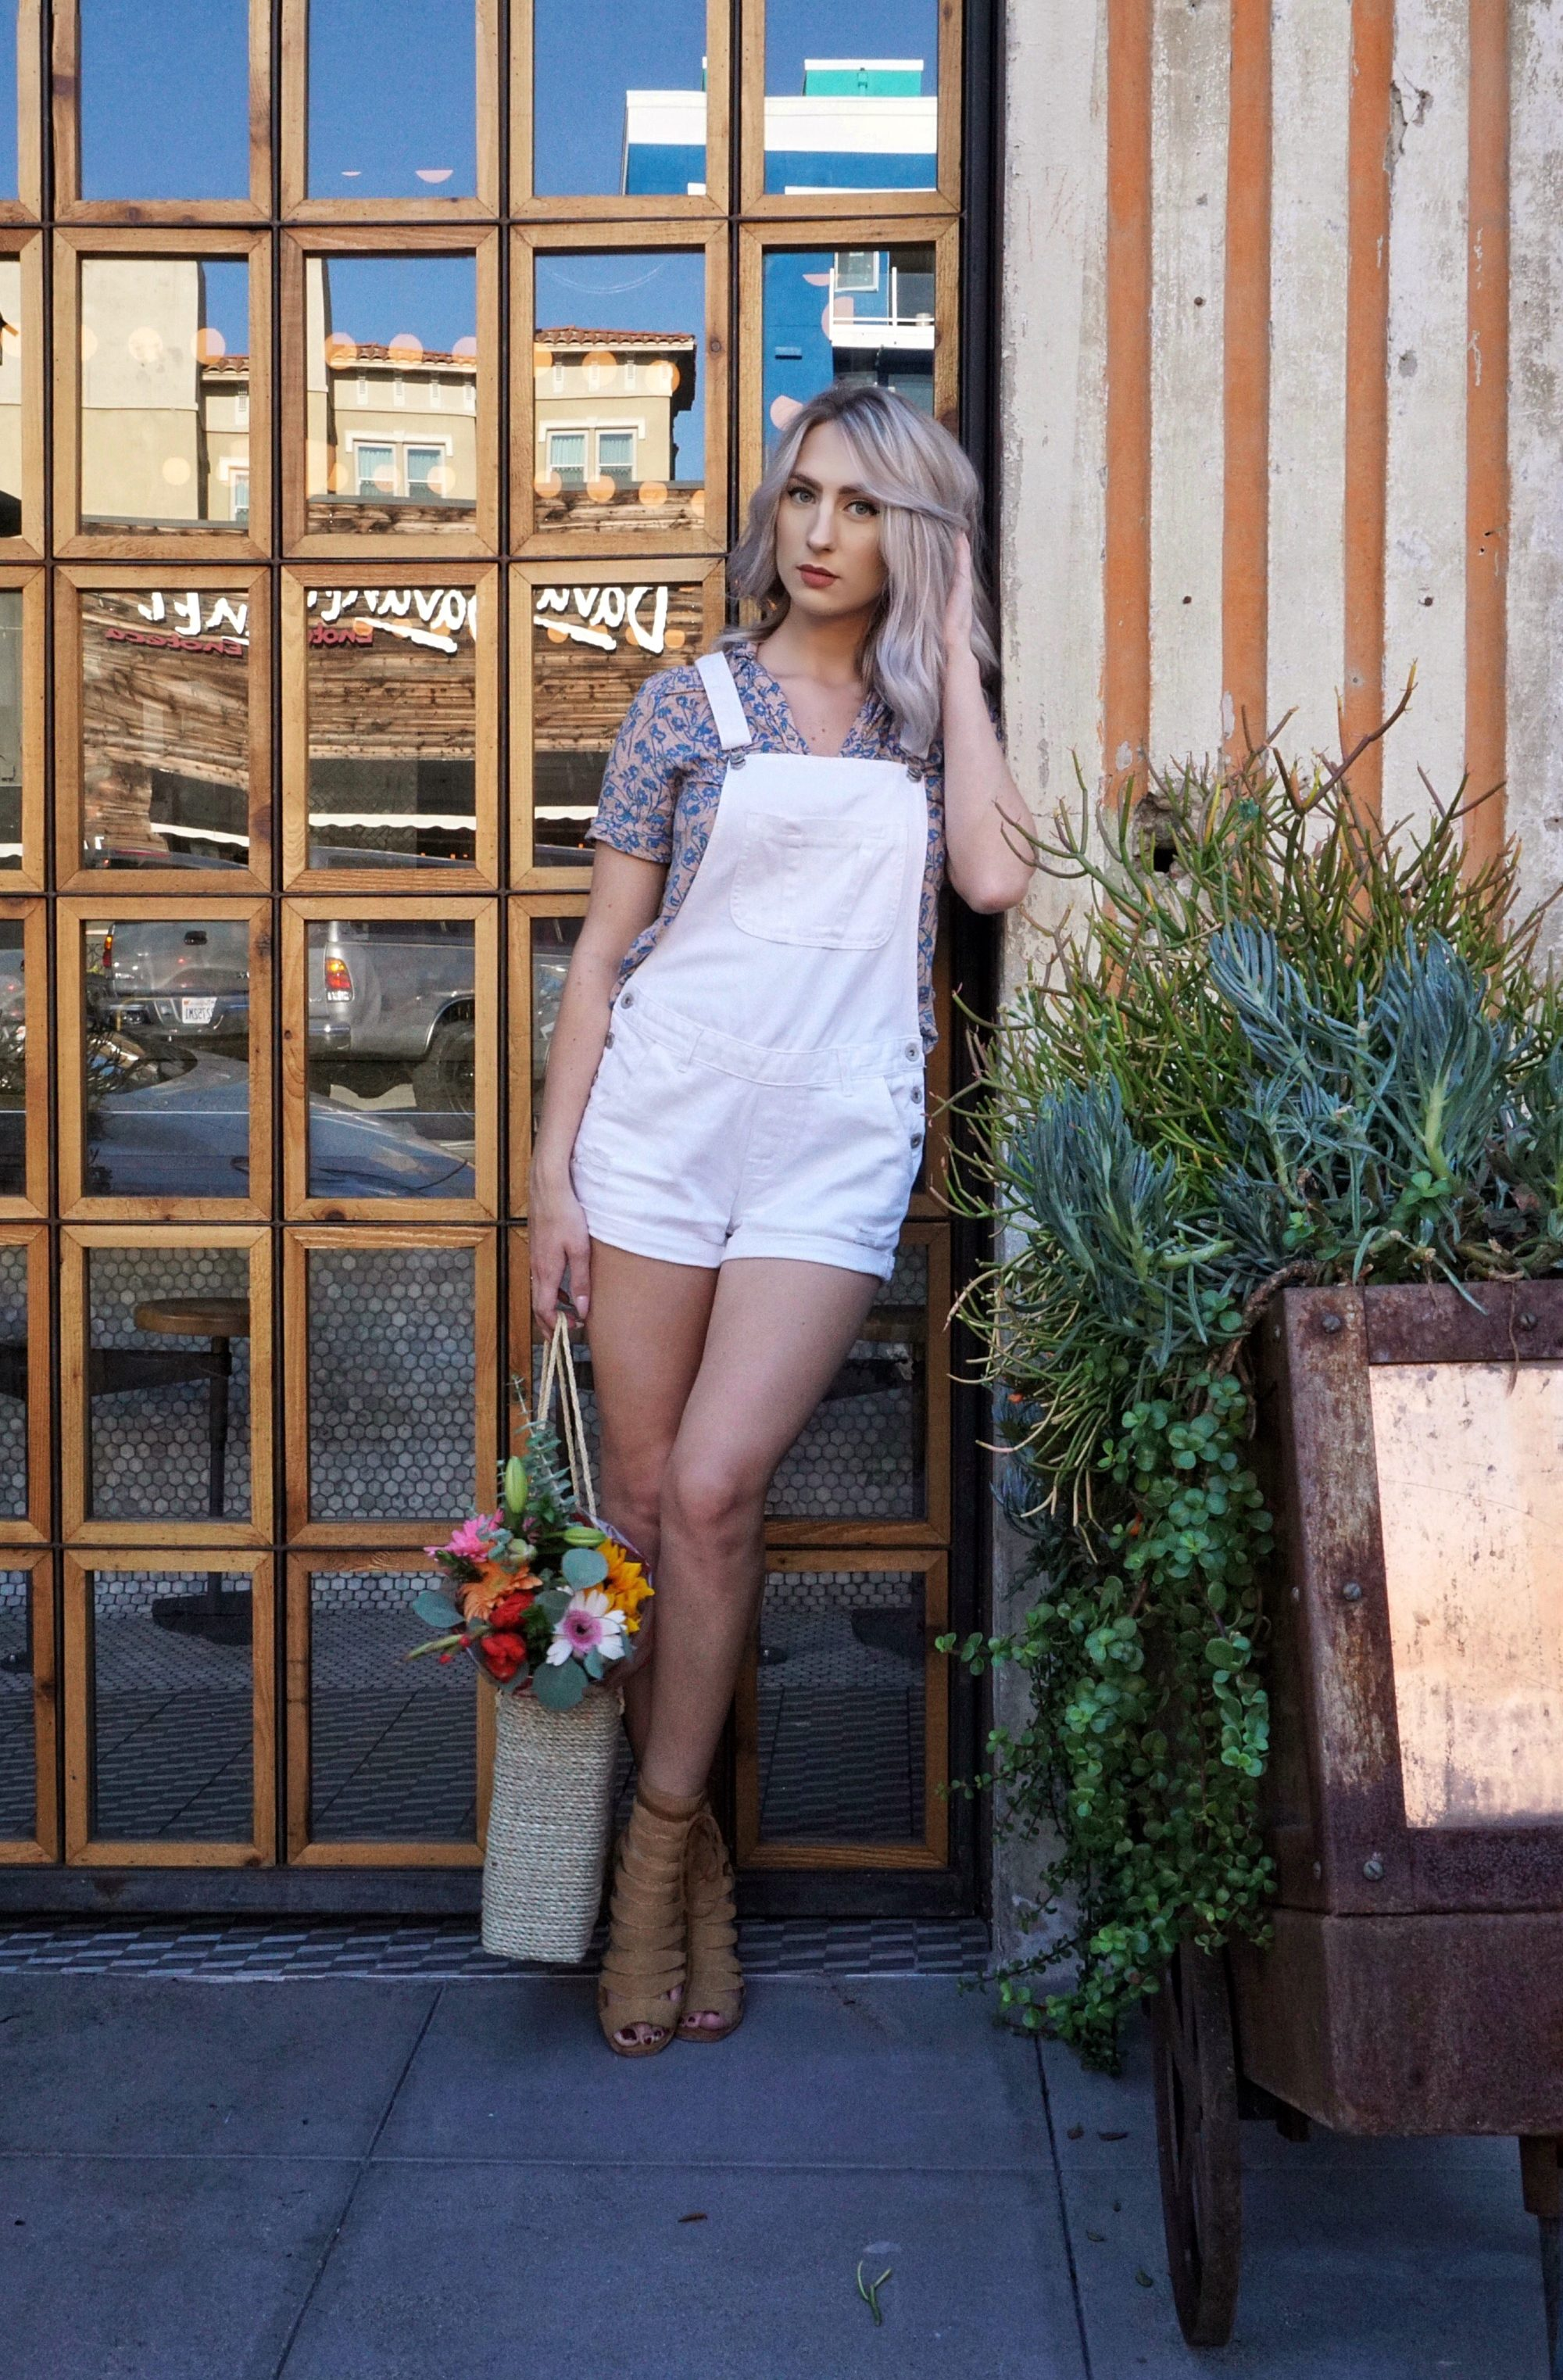 Overalls, Overalls, Overalls! | Until The Very Trend